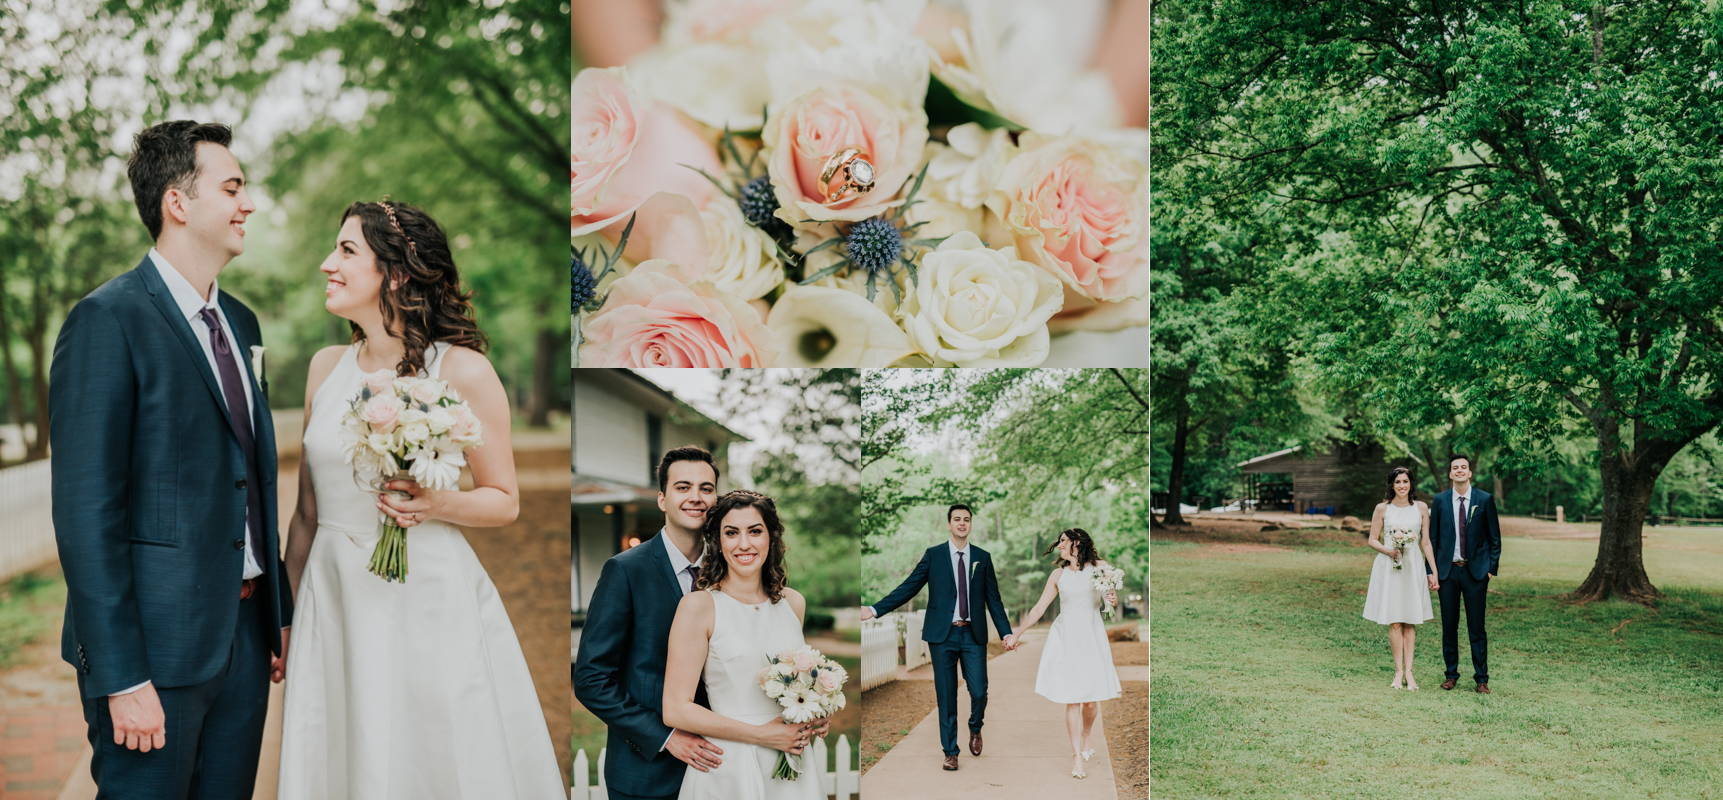 Arianna Belle Photography - Durham, NC wedding